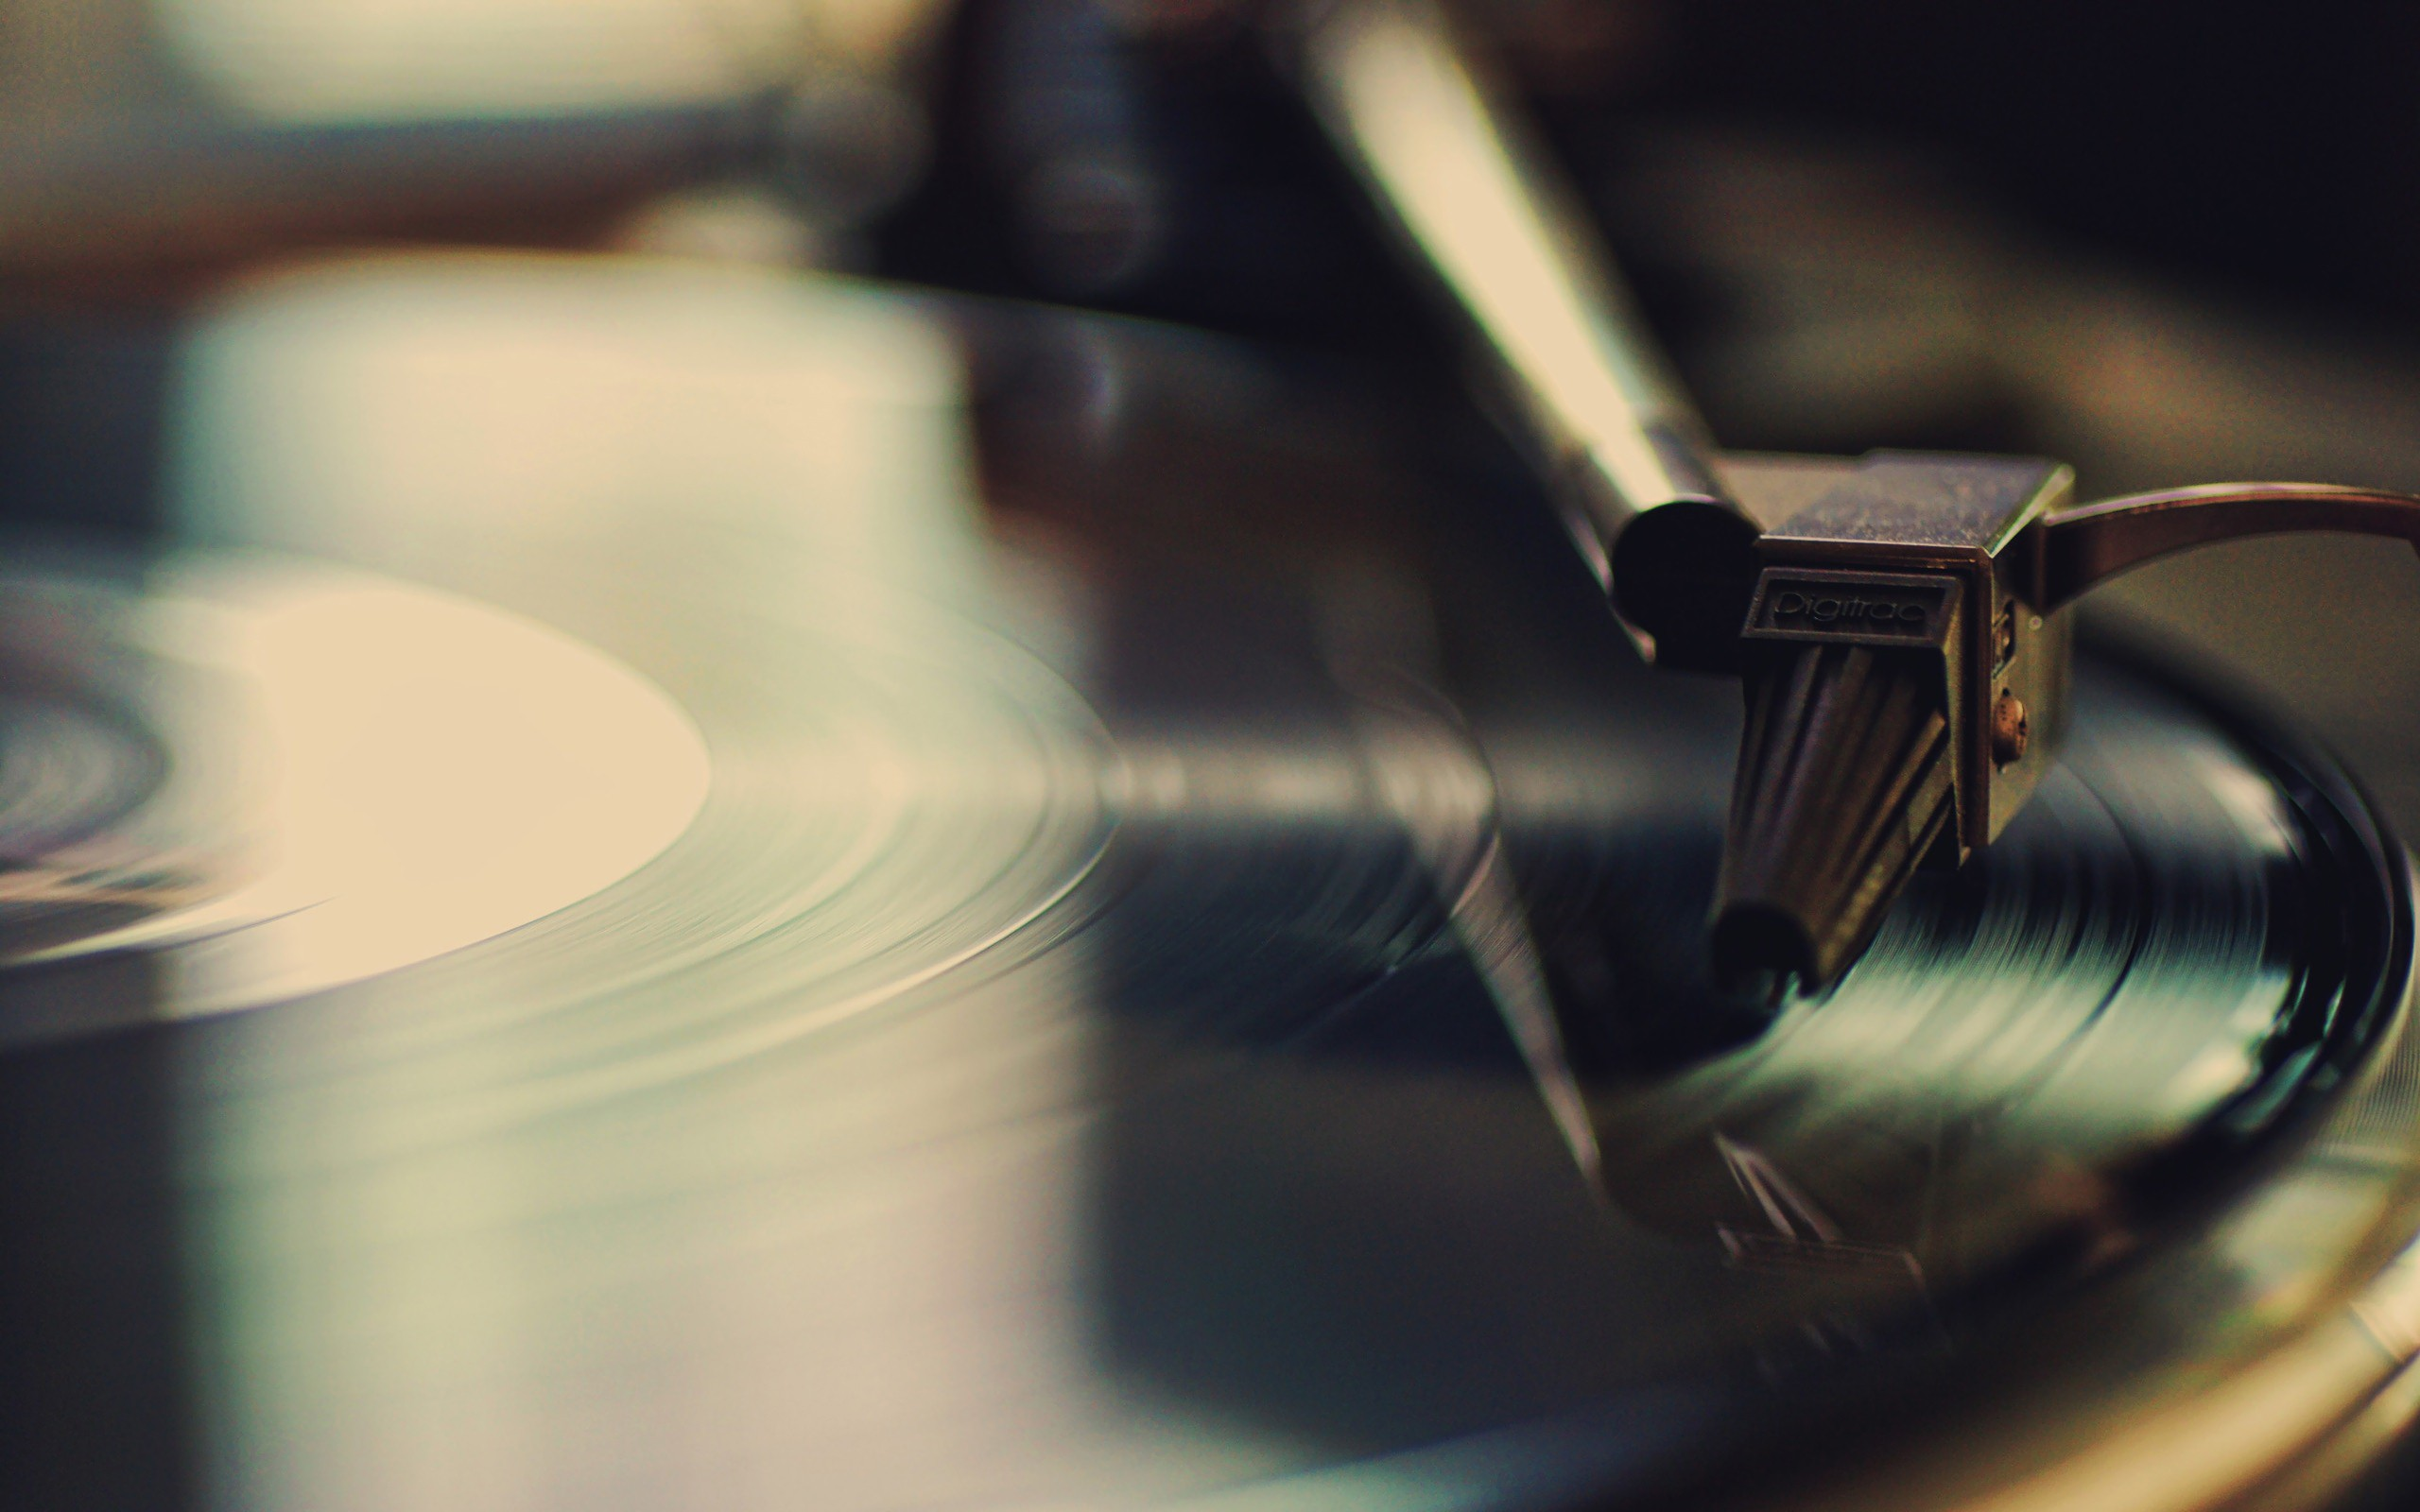 Top Record Vinyl Music Player Wallpapers 2560x1600